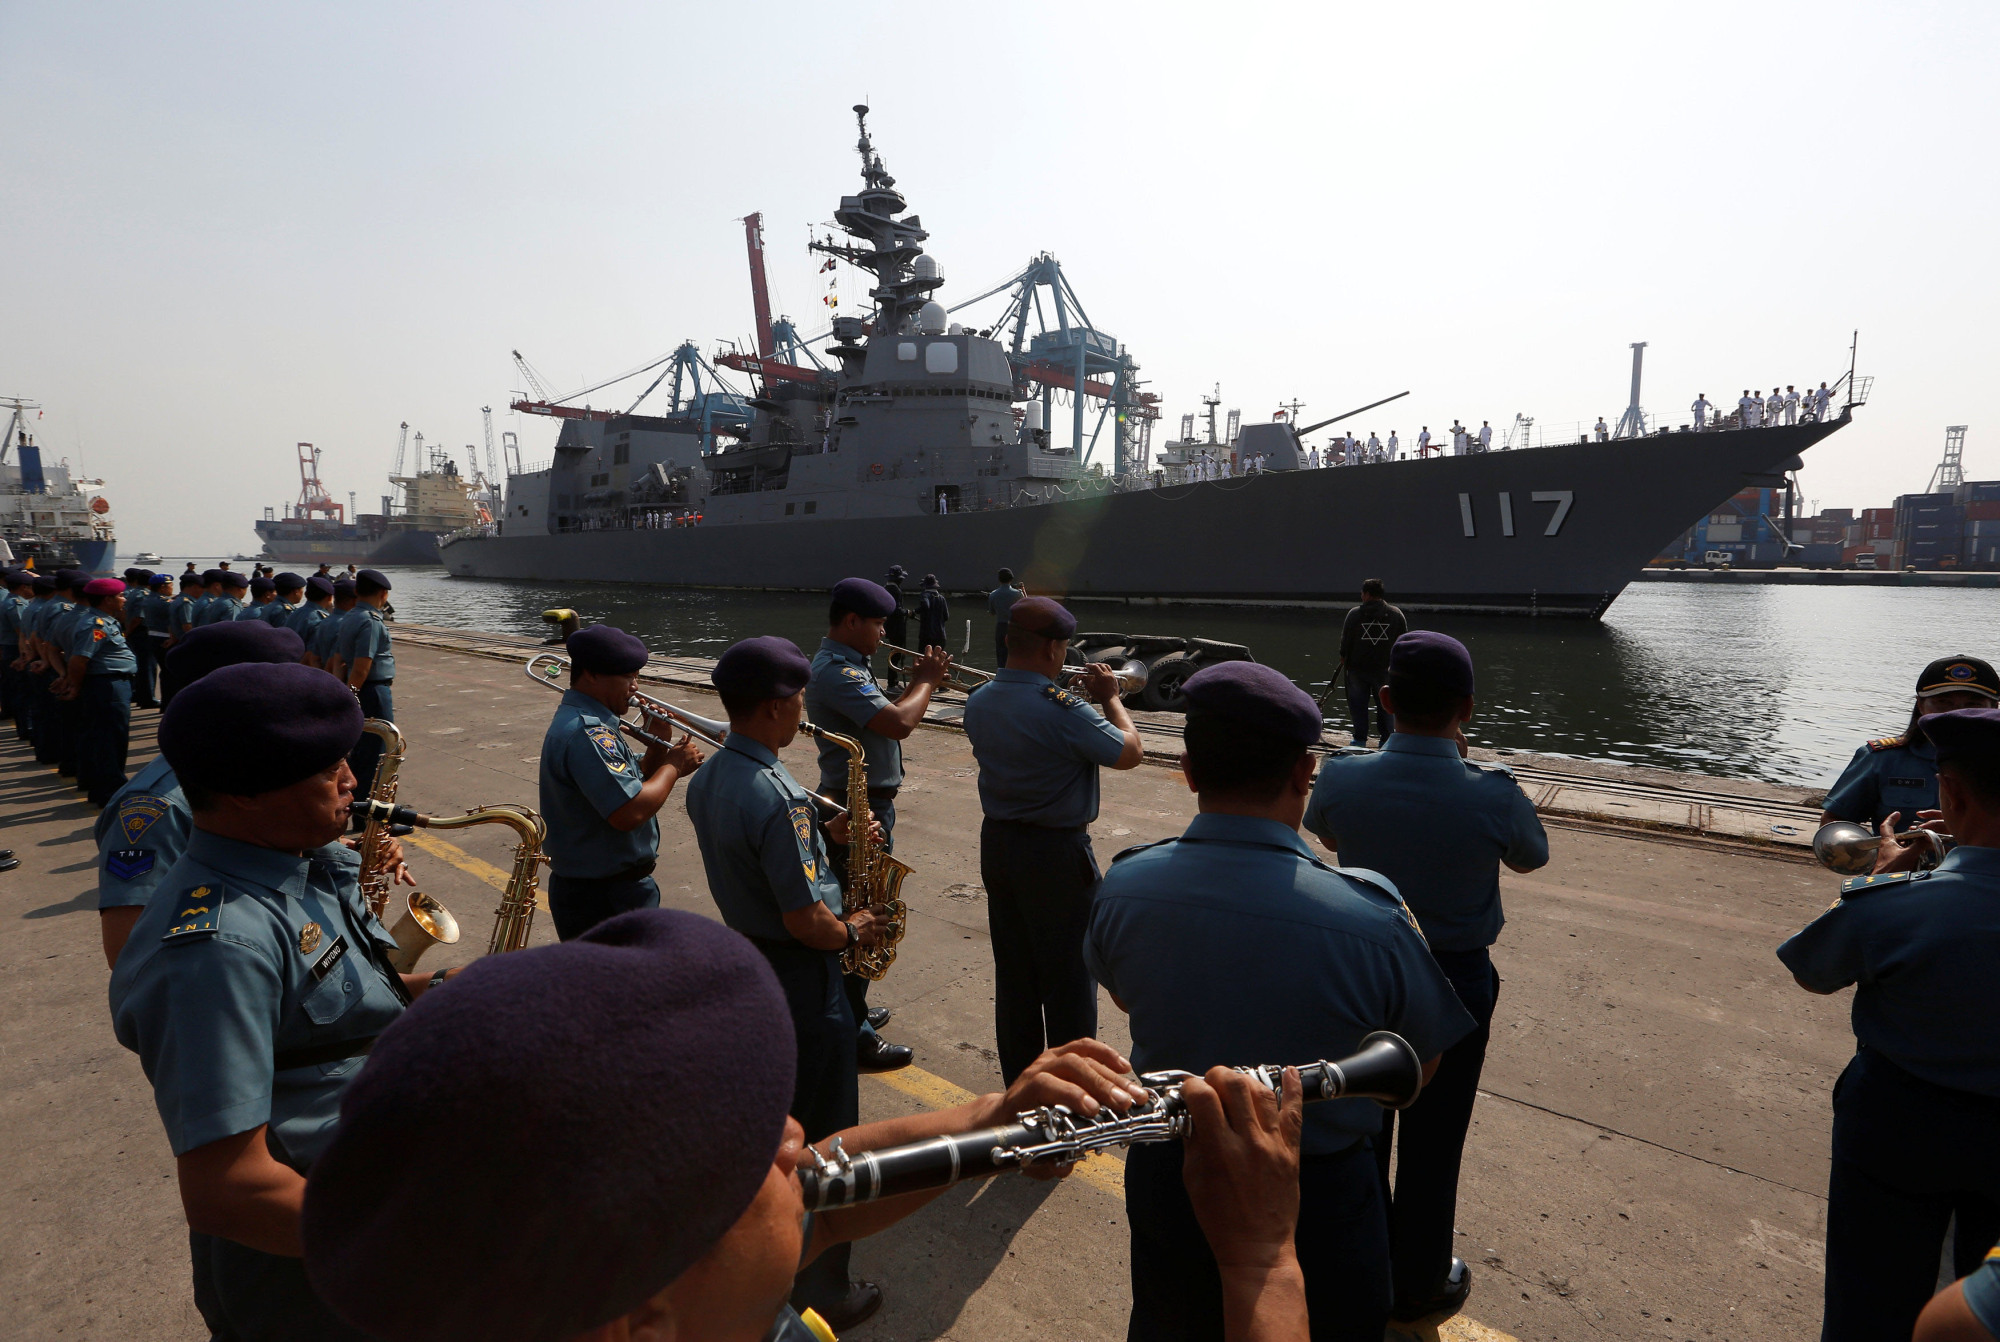 An Indonesian Navy band welcomes the Maritime Self-Defense Force destroyer Suzutsuki as it arrives in Jakarta on Sept. 18 as part of a two month Indo-Pacific tour with the helicopter carrier Kaga and the destroyer Inazuma. | REUTERS